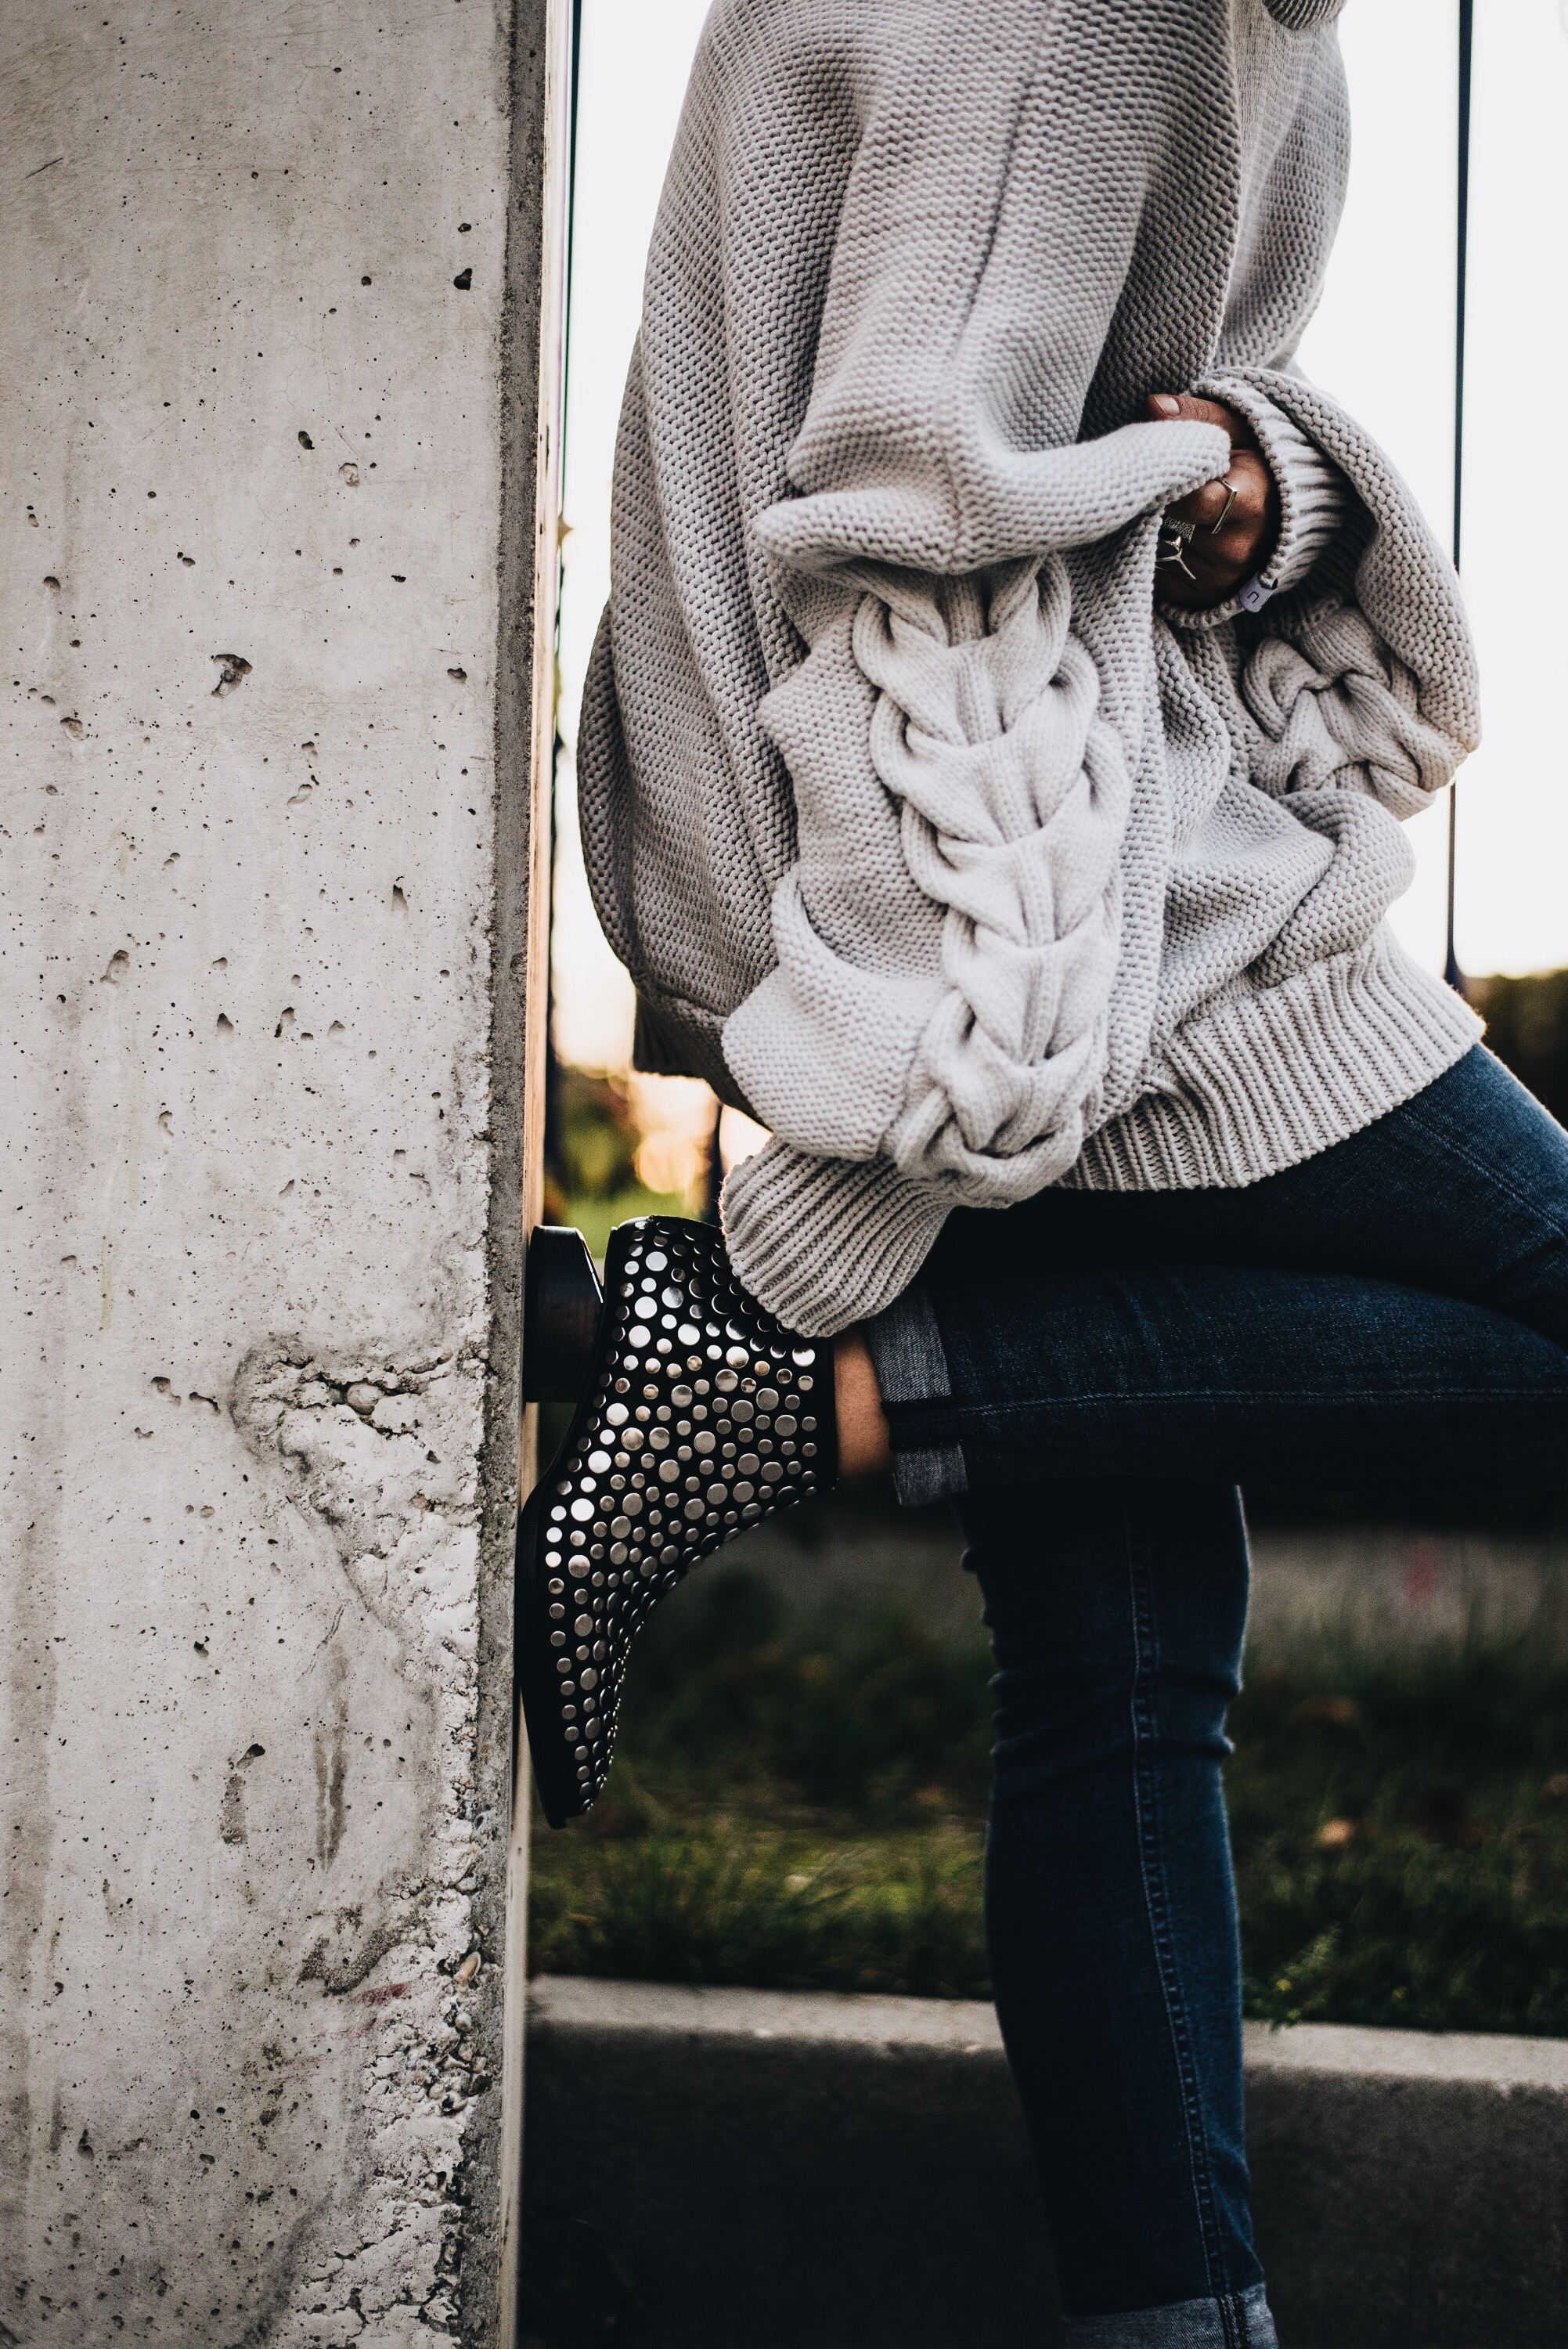 allthatchoices by Laura fashionblog mainz frankfurt lifestyle oversize knit strick alexander wang studded boots nieten acne jeans atene atuko